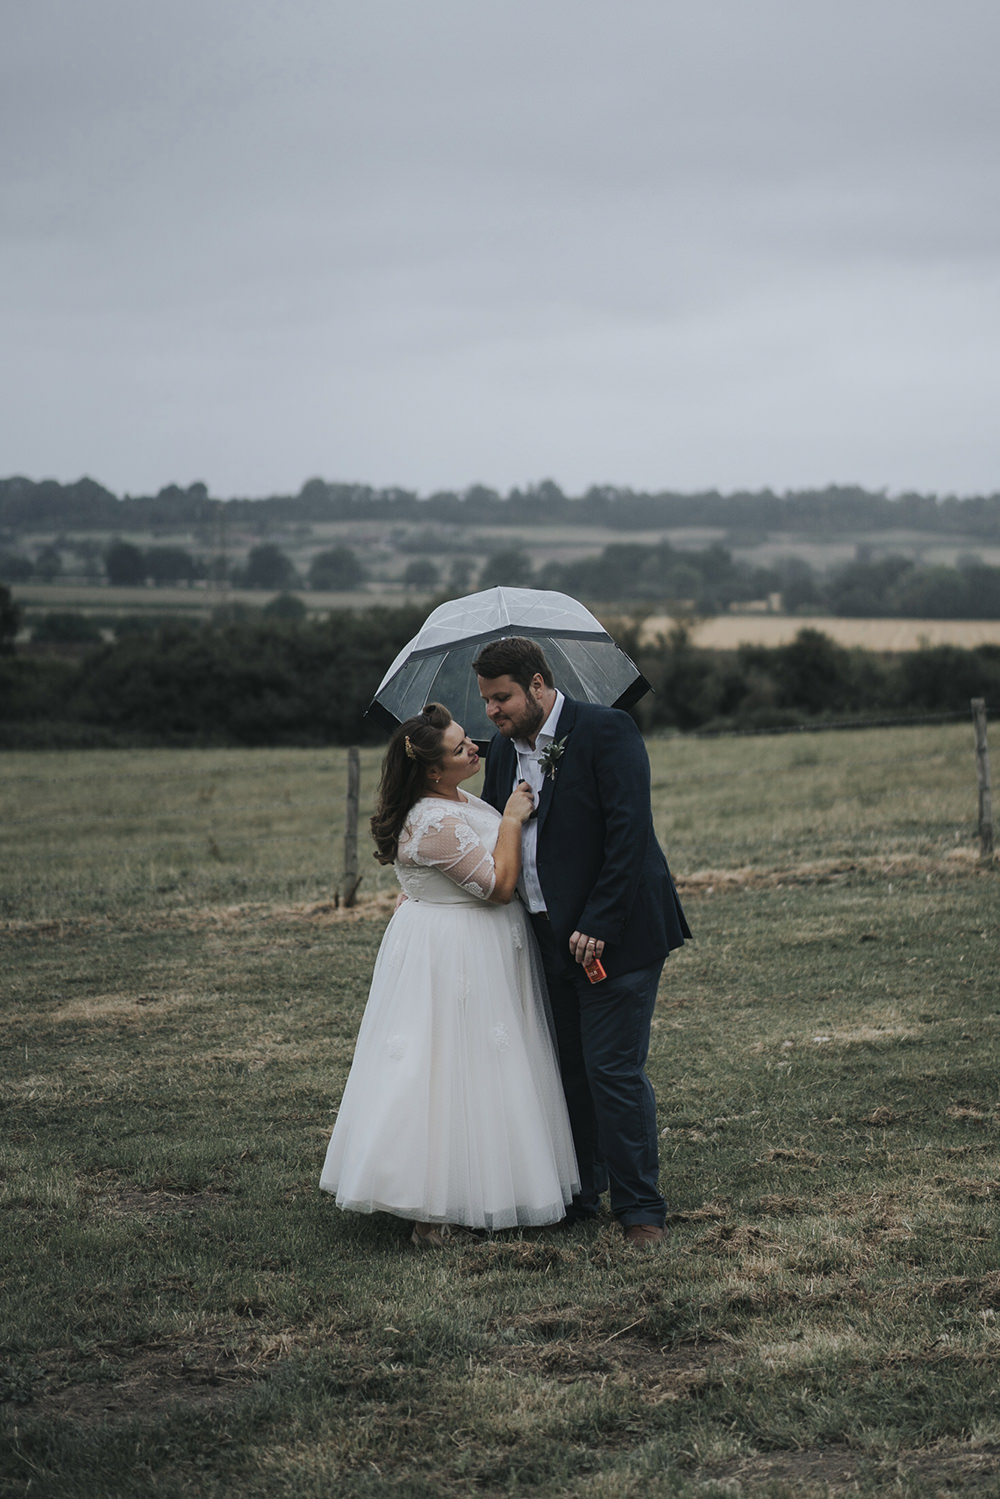 Bride Bridal Dress Gown Overlay Belt See Through Sleeves Open Shirt Groom Rain Umbrella Celestial Cow Shed Wedding Tora Baker Photography